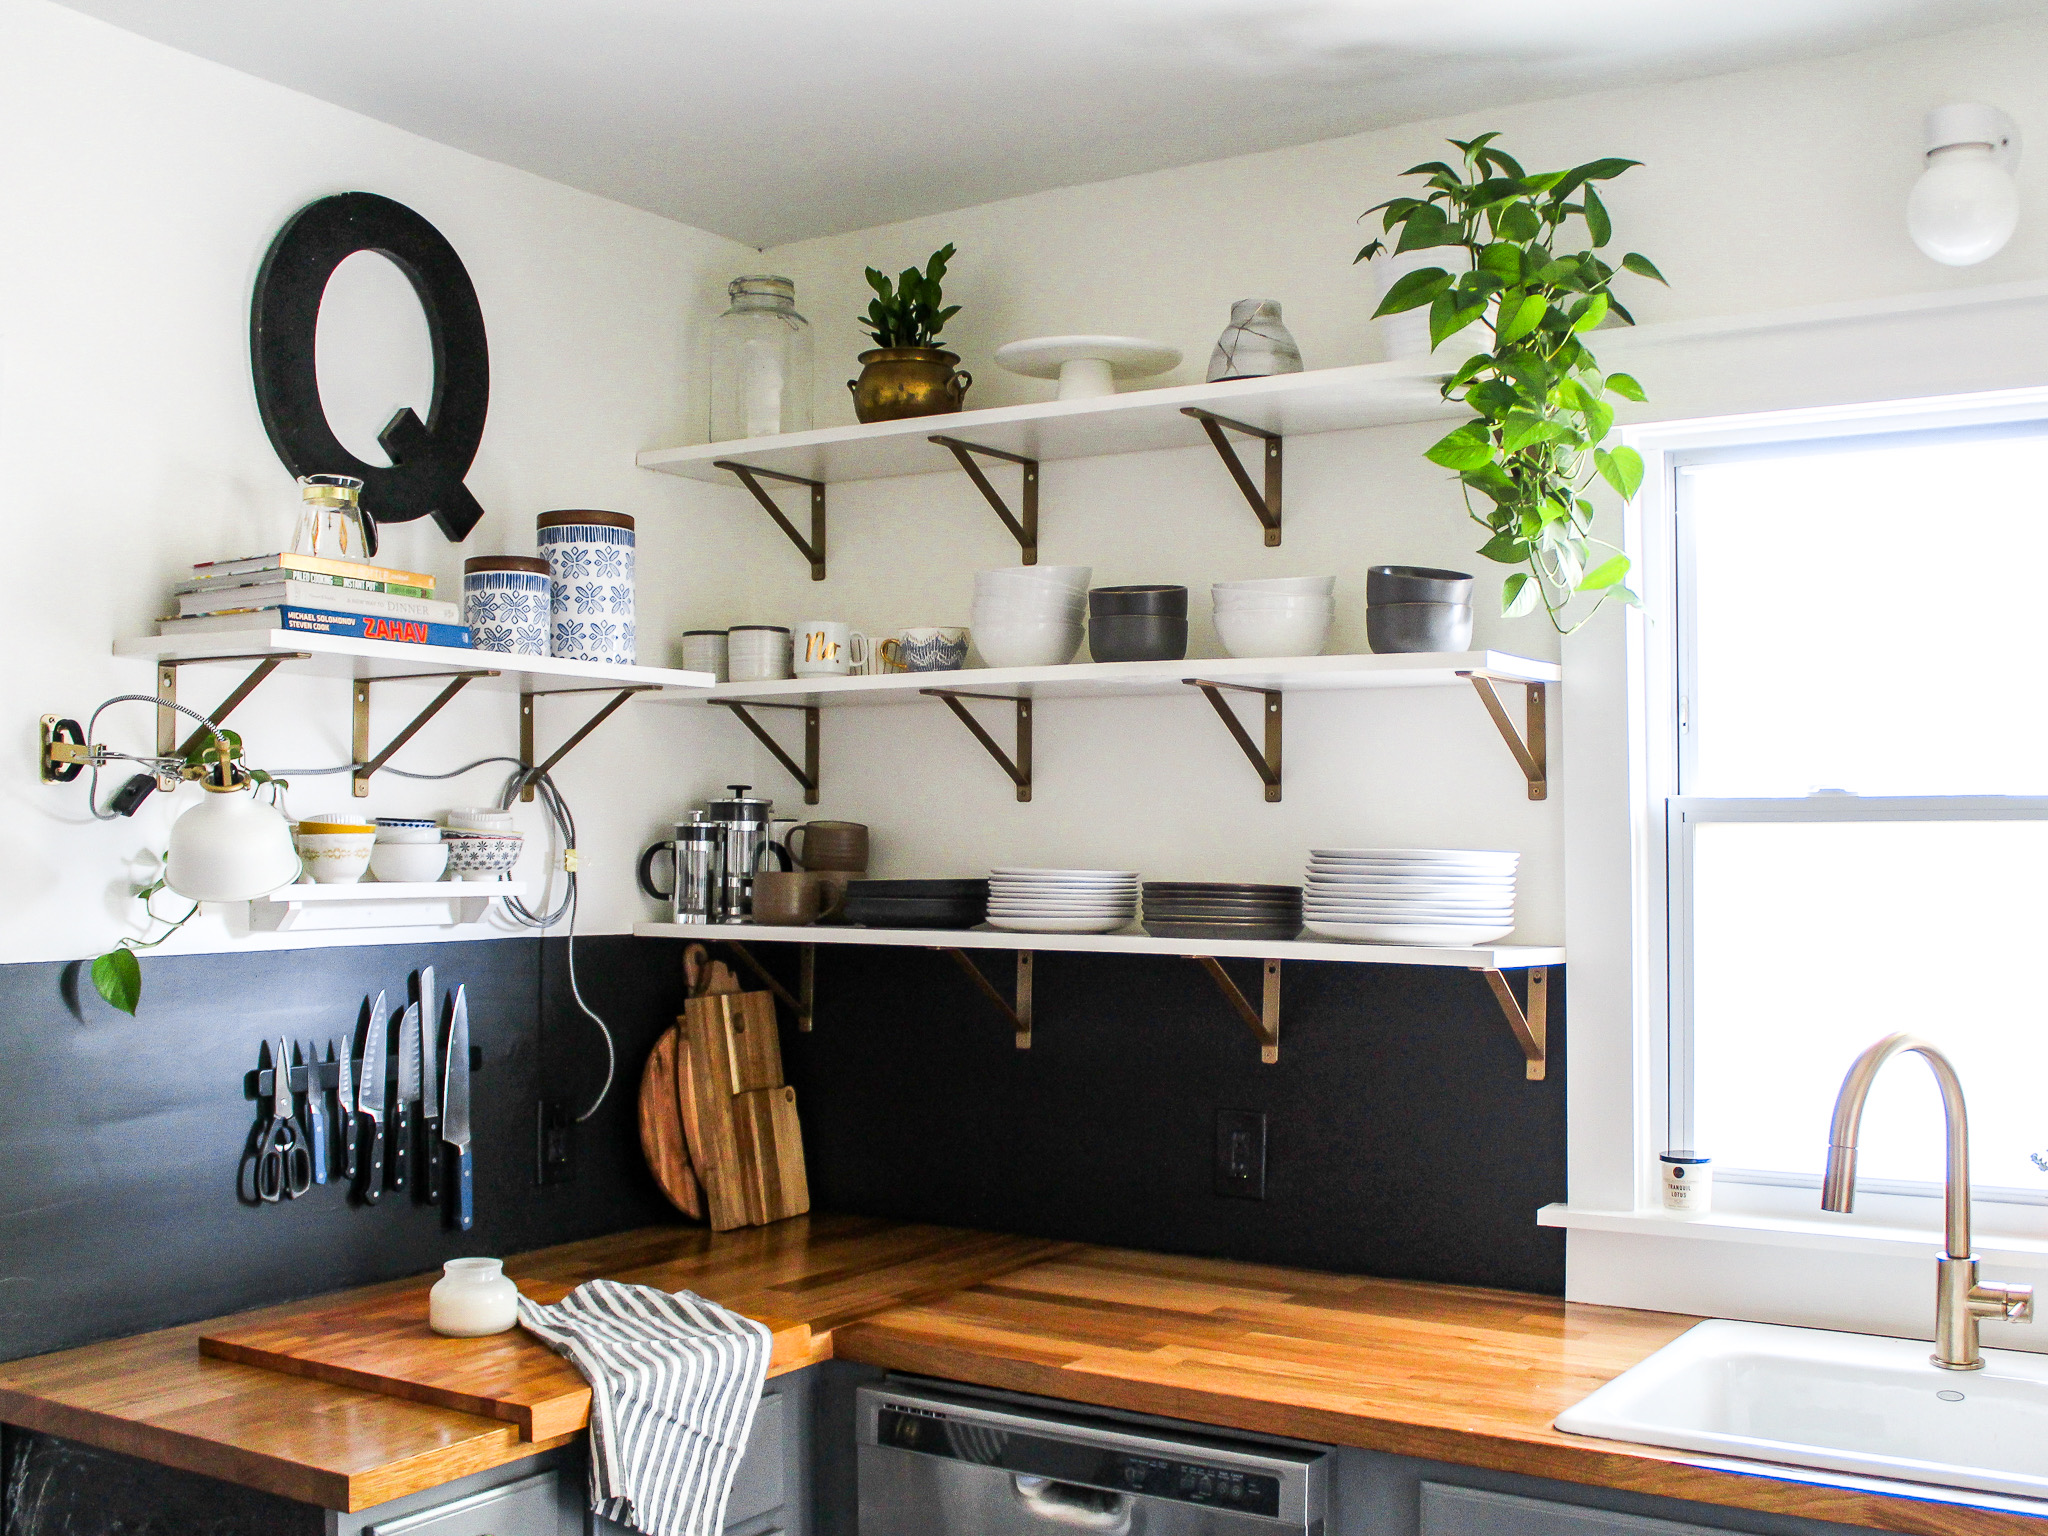 DIY Kitchen Renovation Black Paint